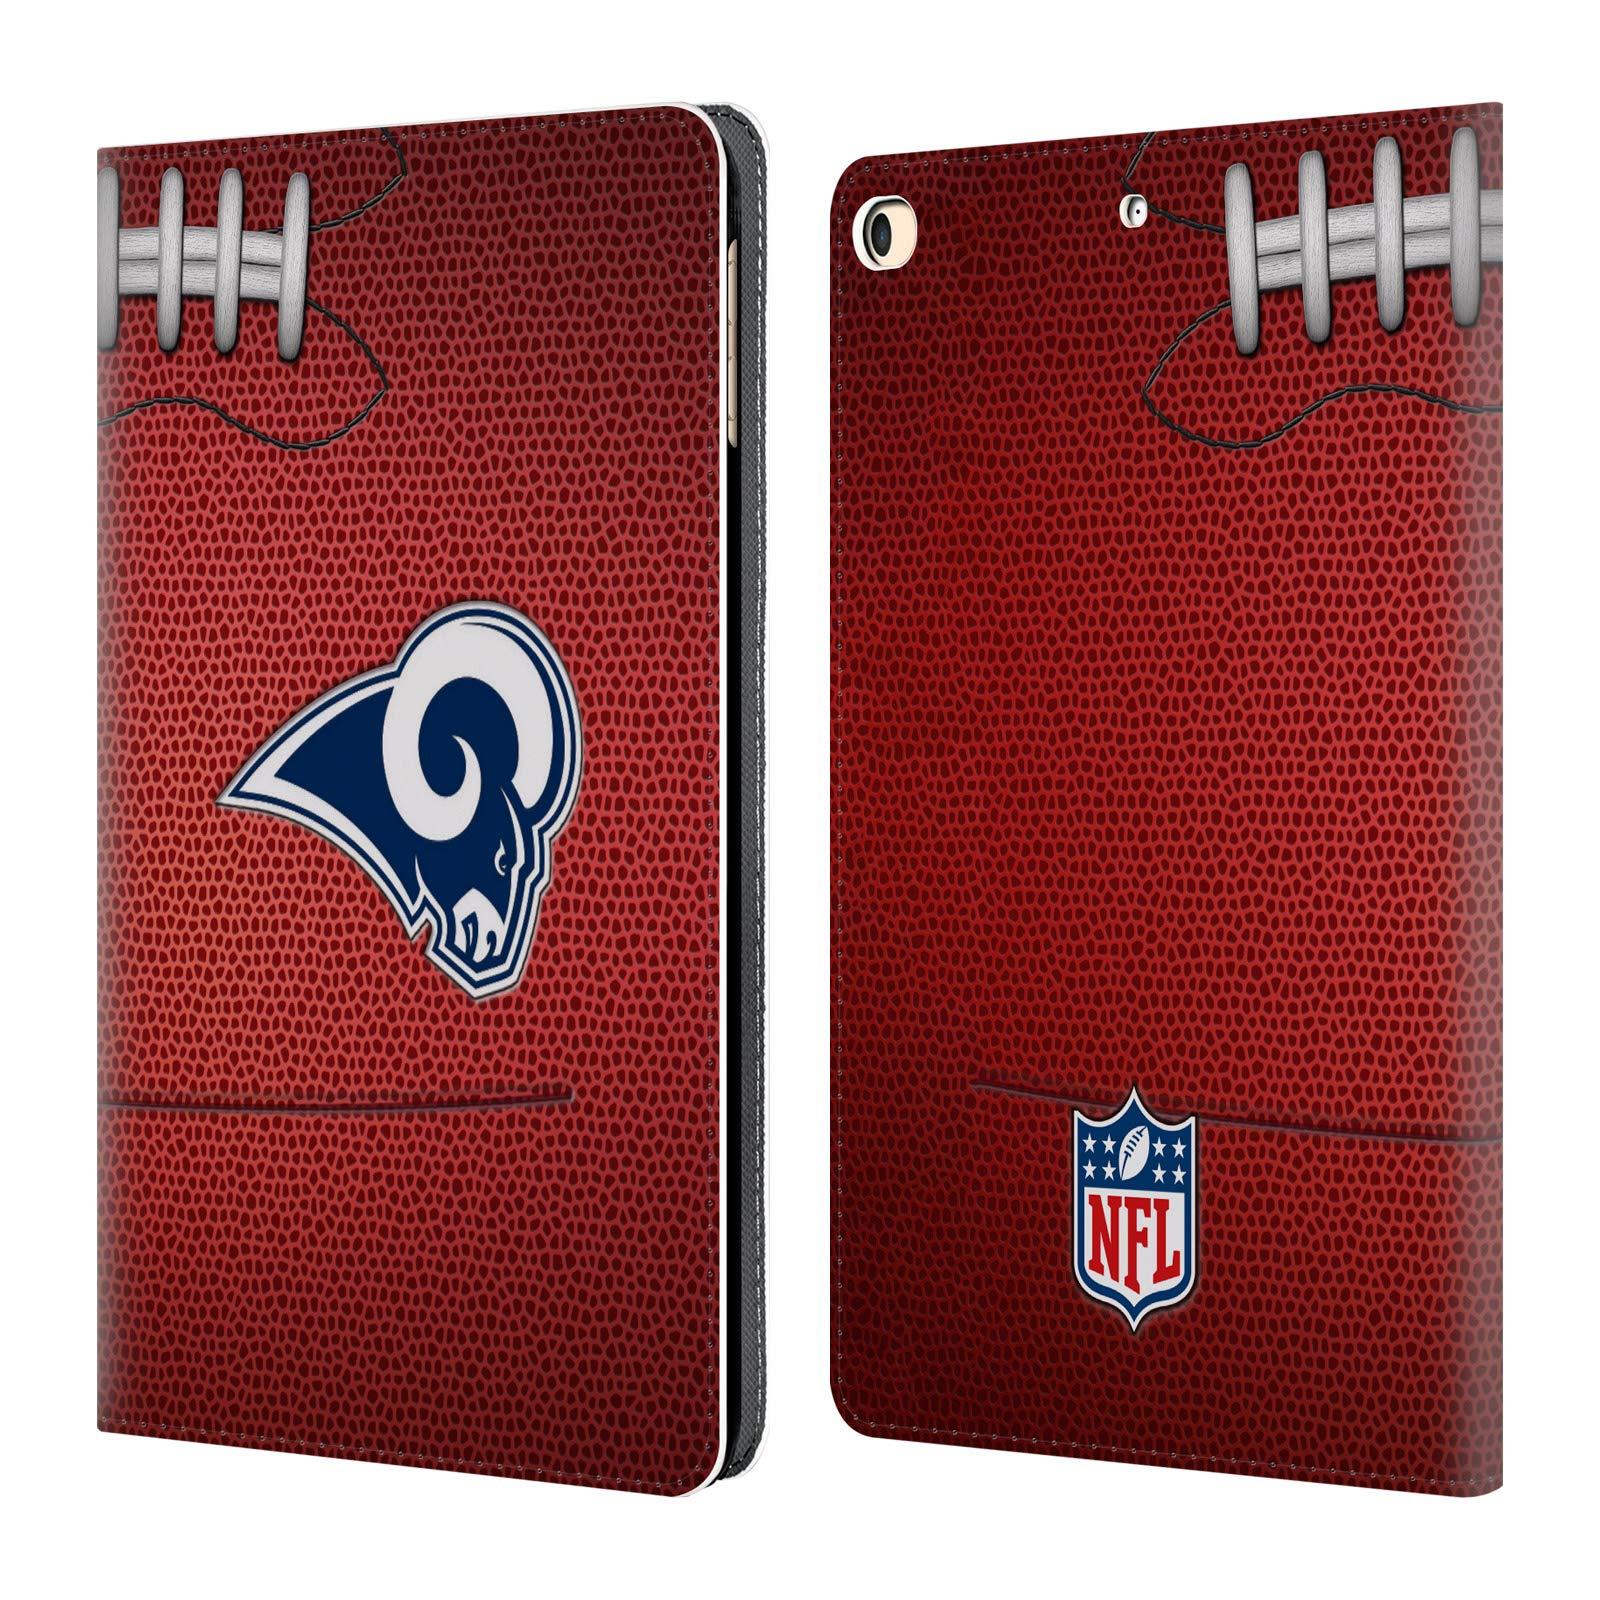 Official NFL Football 2018/19 Los Angeles Rams Leather Book Wallet Case Cover for iPad 9.7 2017 / iPad 9.7 2018